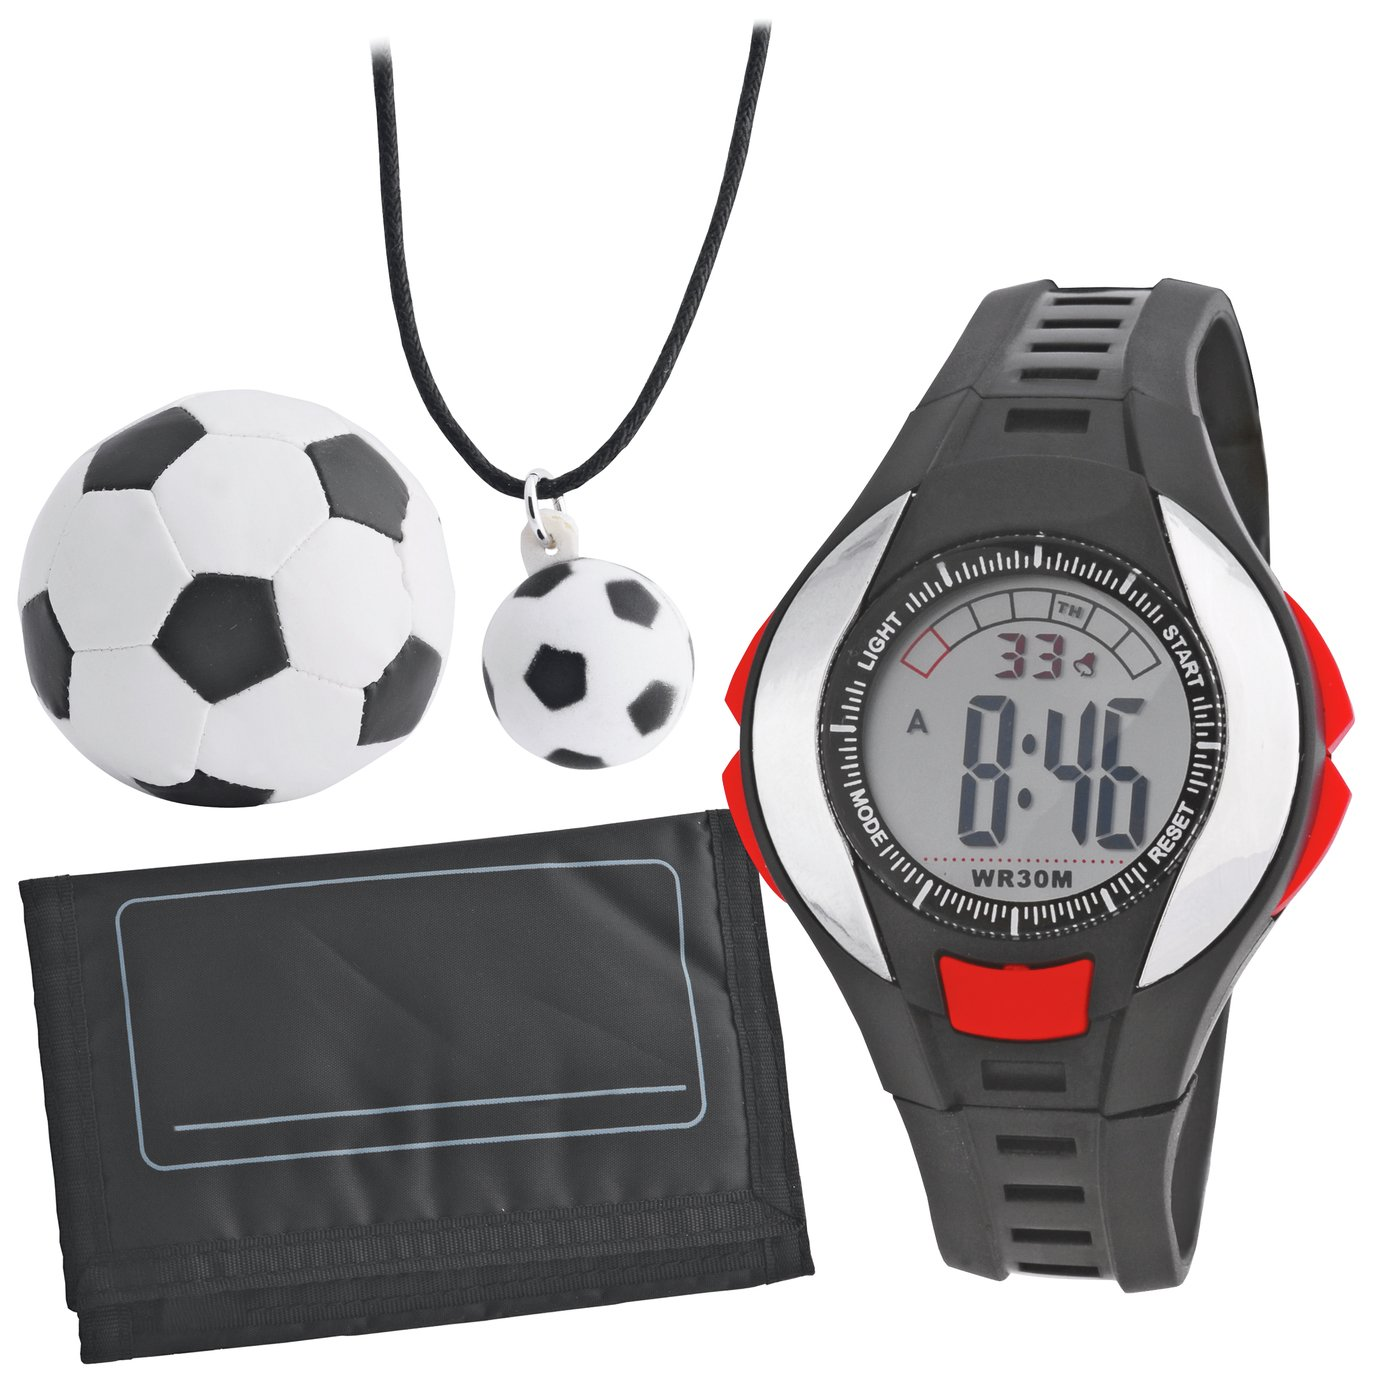 Gola Black Digital Watch Set